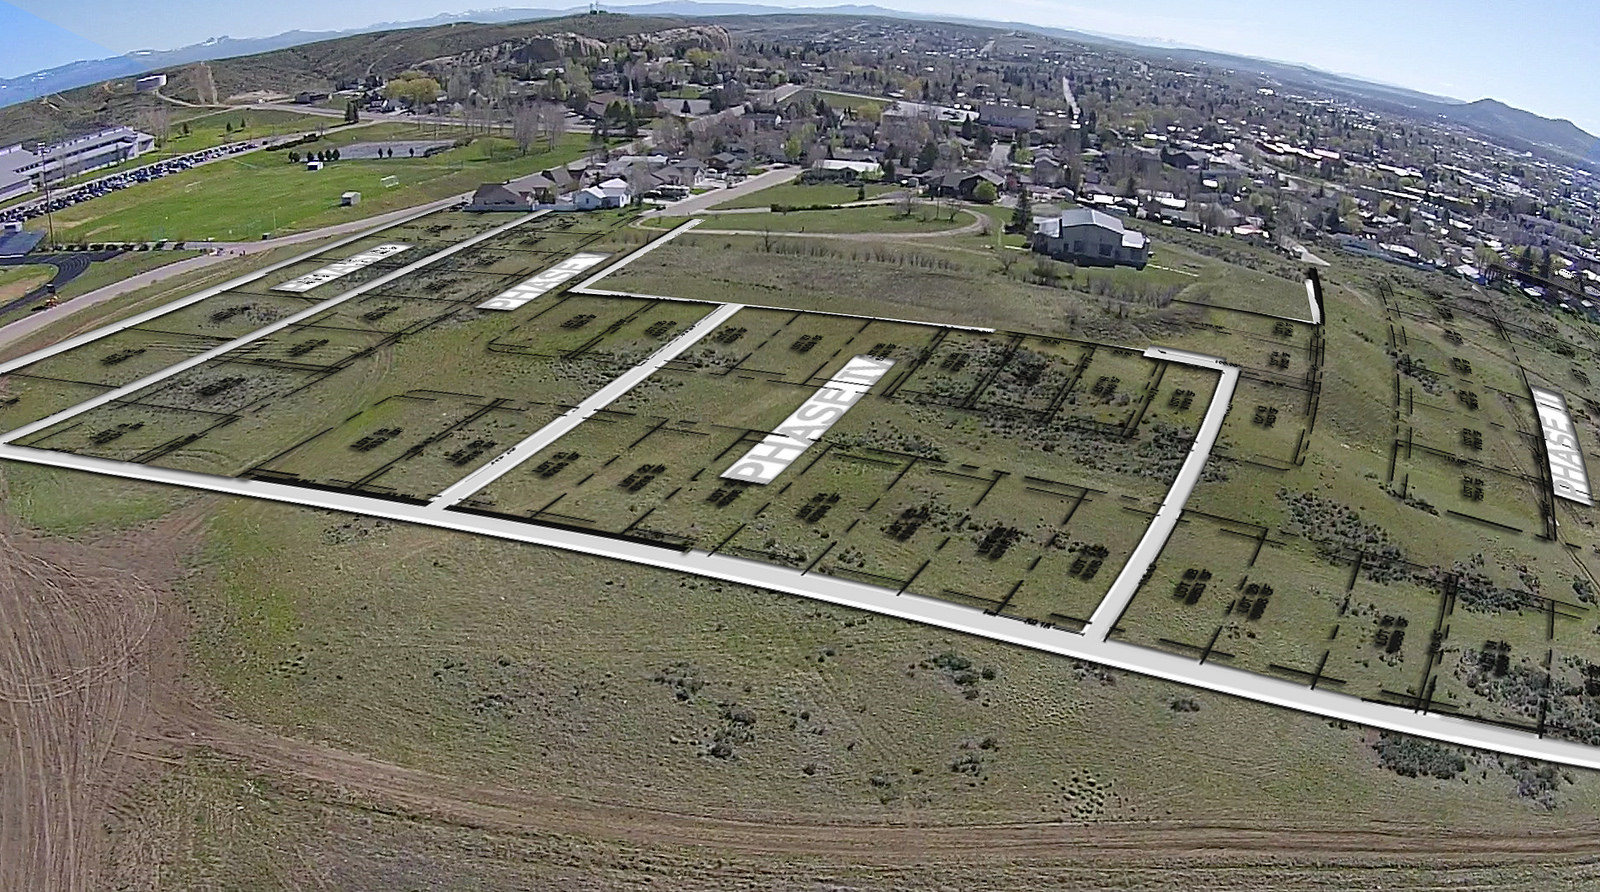 Property with site overlay, Aerial, housing development, Craig, CO, land development for sale, 23-acres, 90 home sites